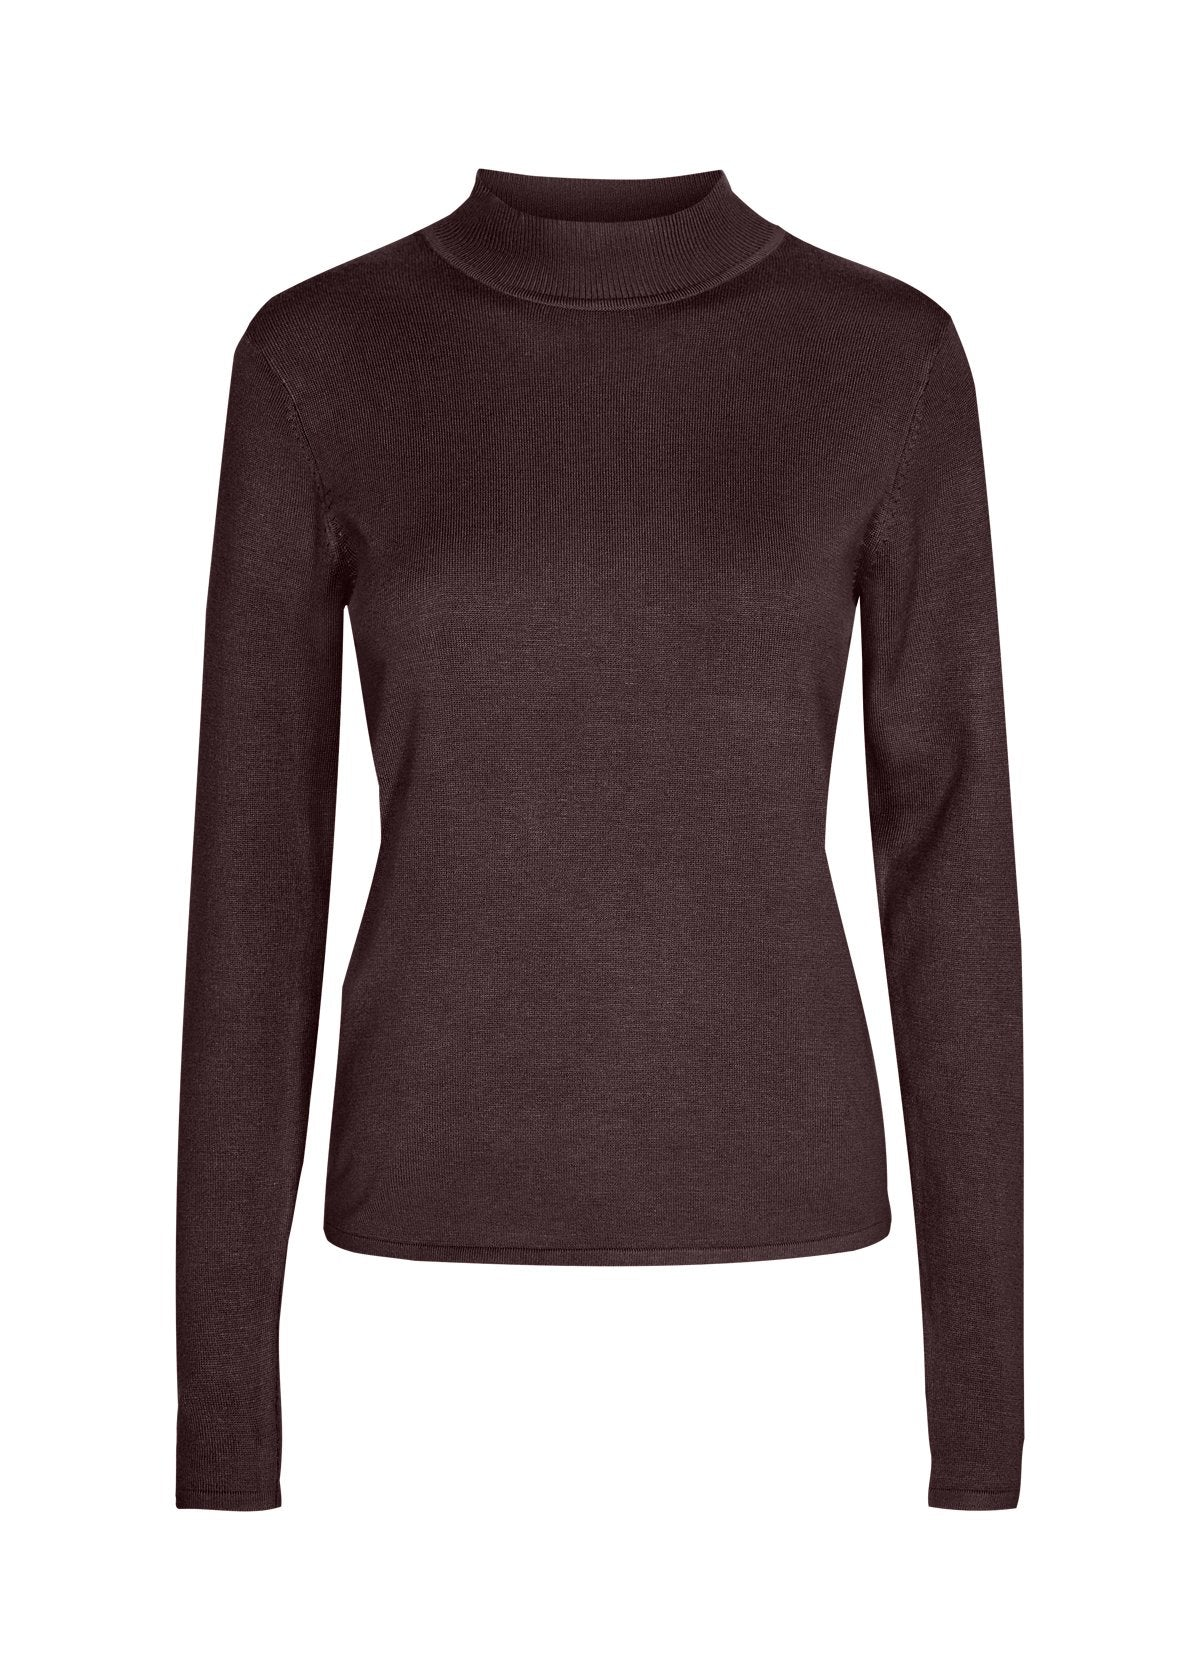 Soya Concept mock neck sweater 32993 maroon